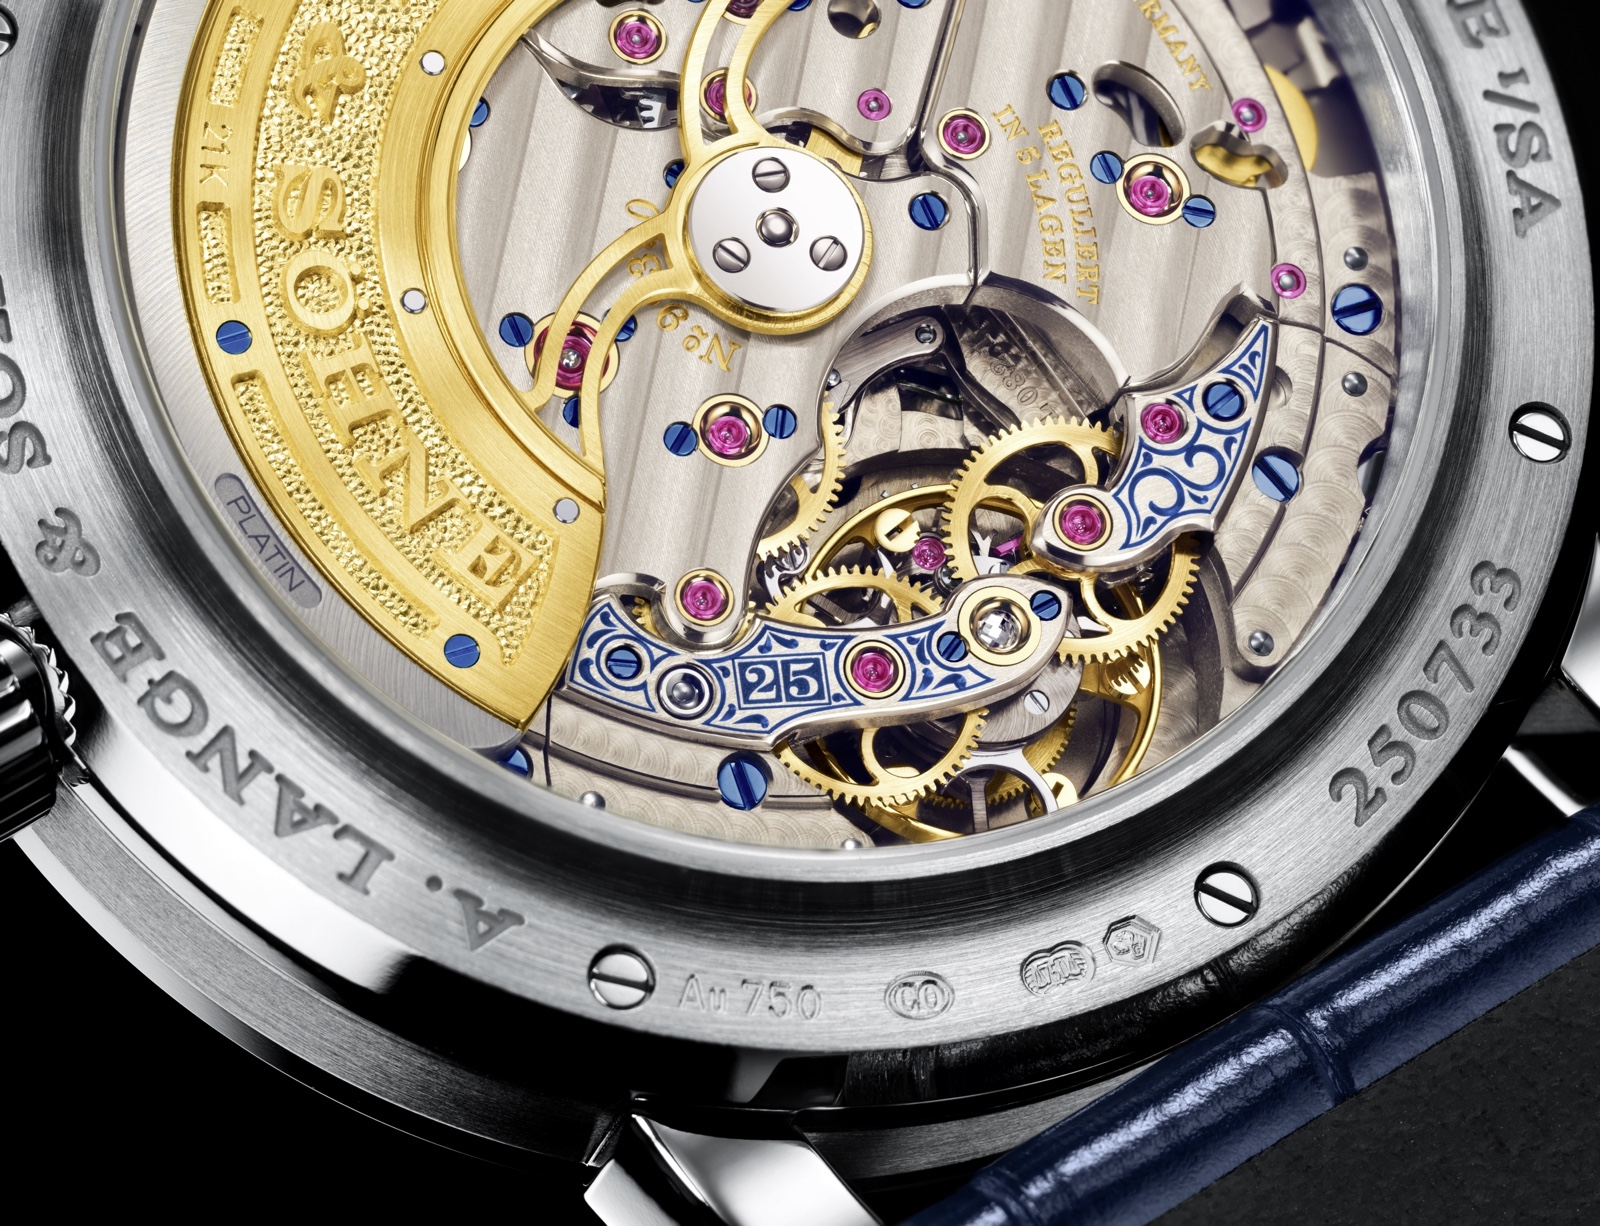 Lange 1 Tourbillon Perpetual Calendar 25th Anniversary Edition Detail